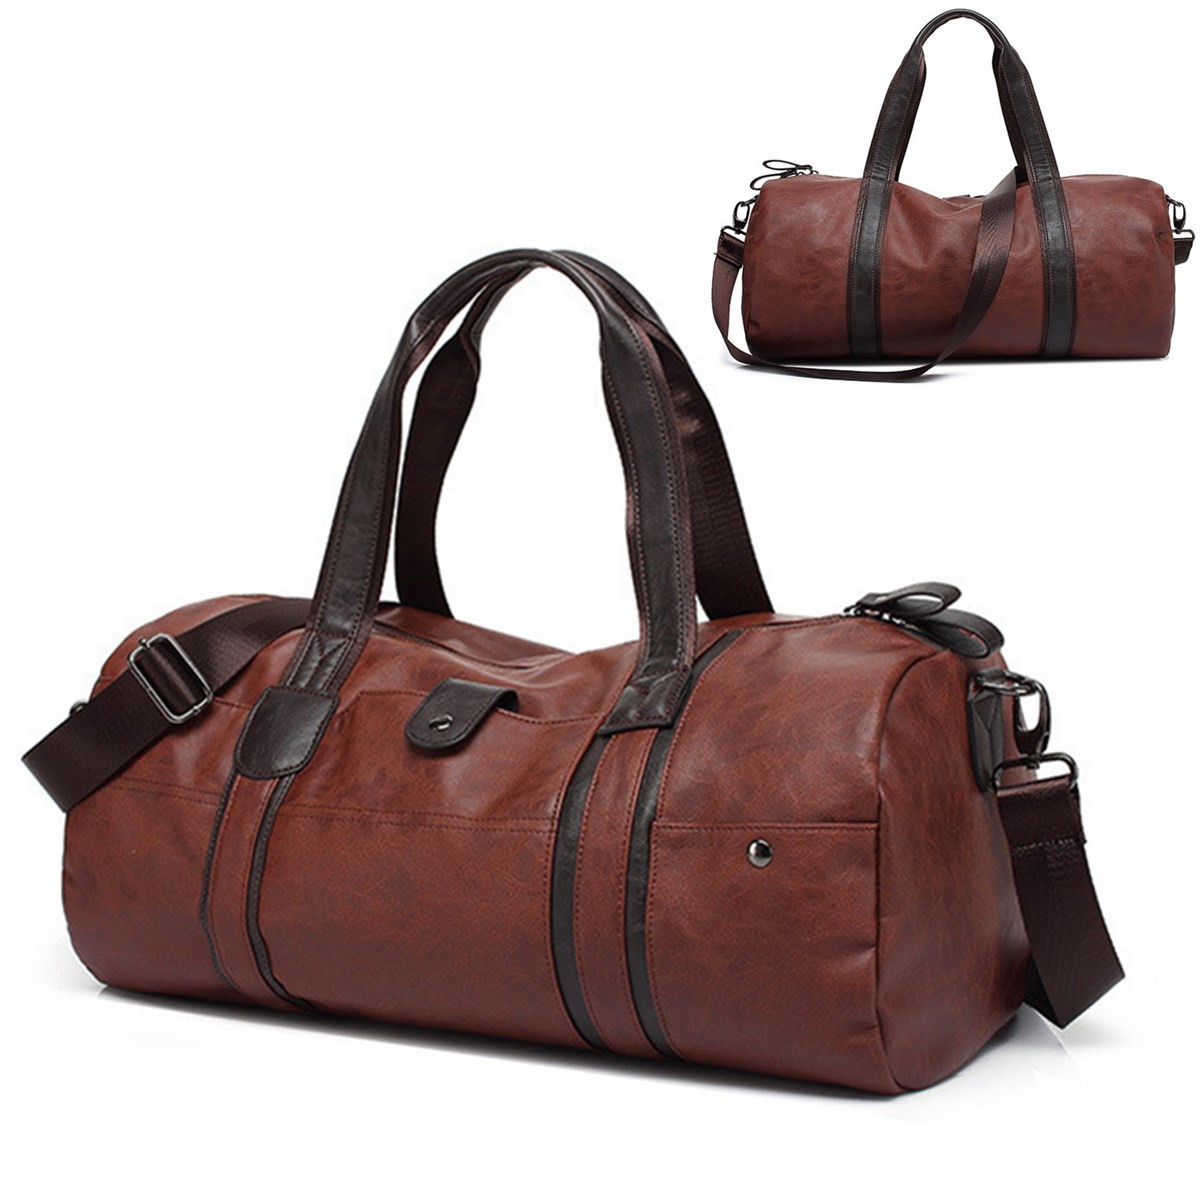 Men Large Capacity Leather Luggage Travel Shoulder Bag Duffle Gym Tote Handbag by